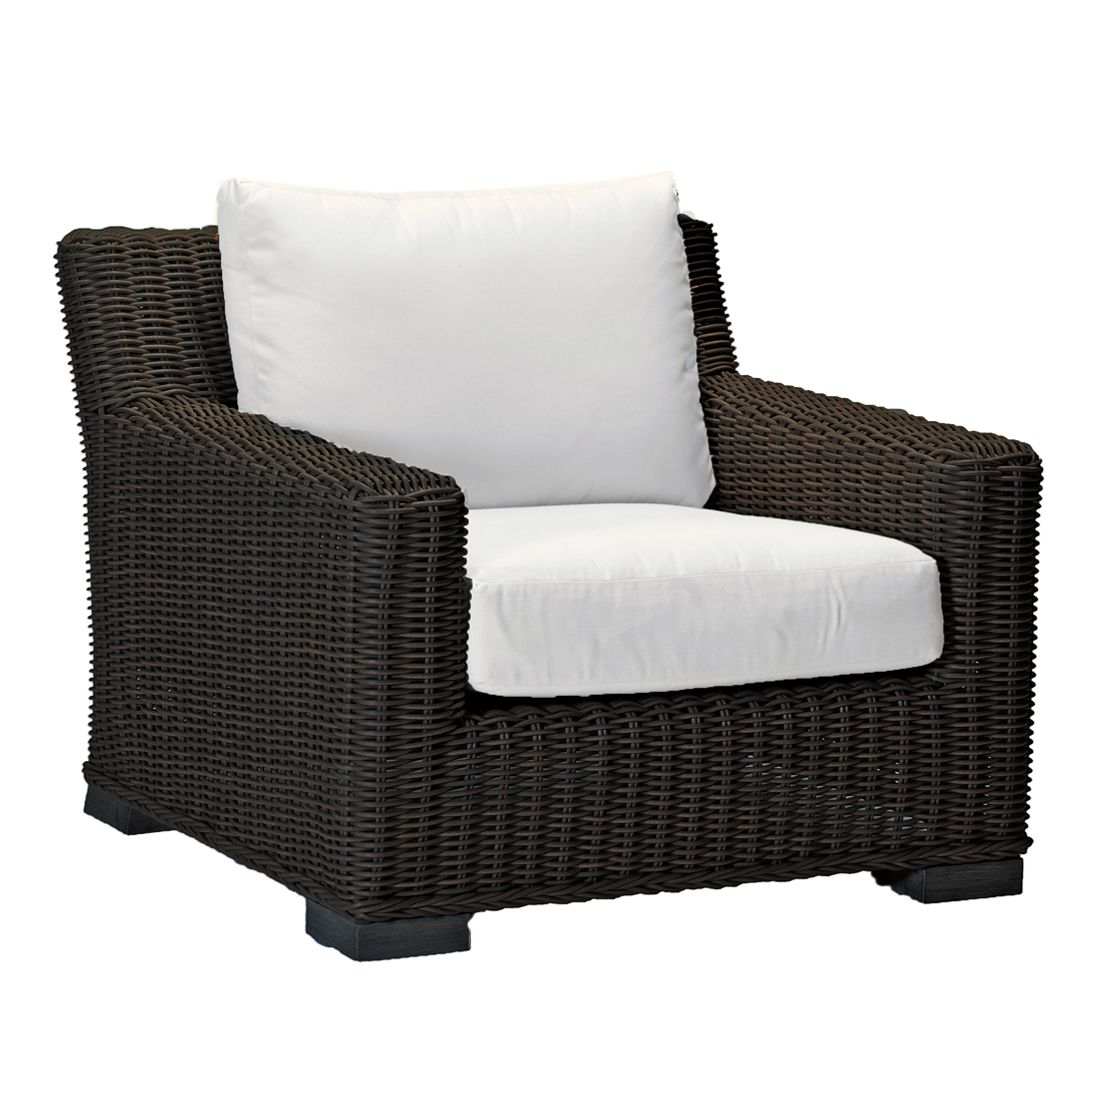 rustic lounge chair - Dimensions: W37.25 D38 H30.75